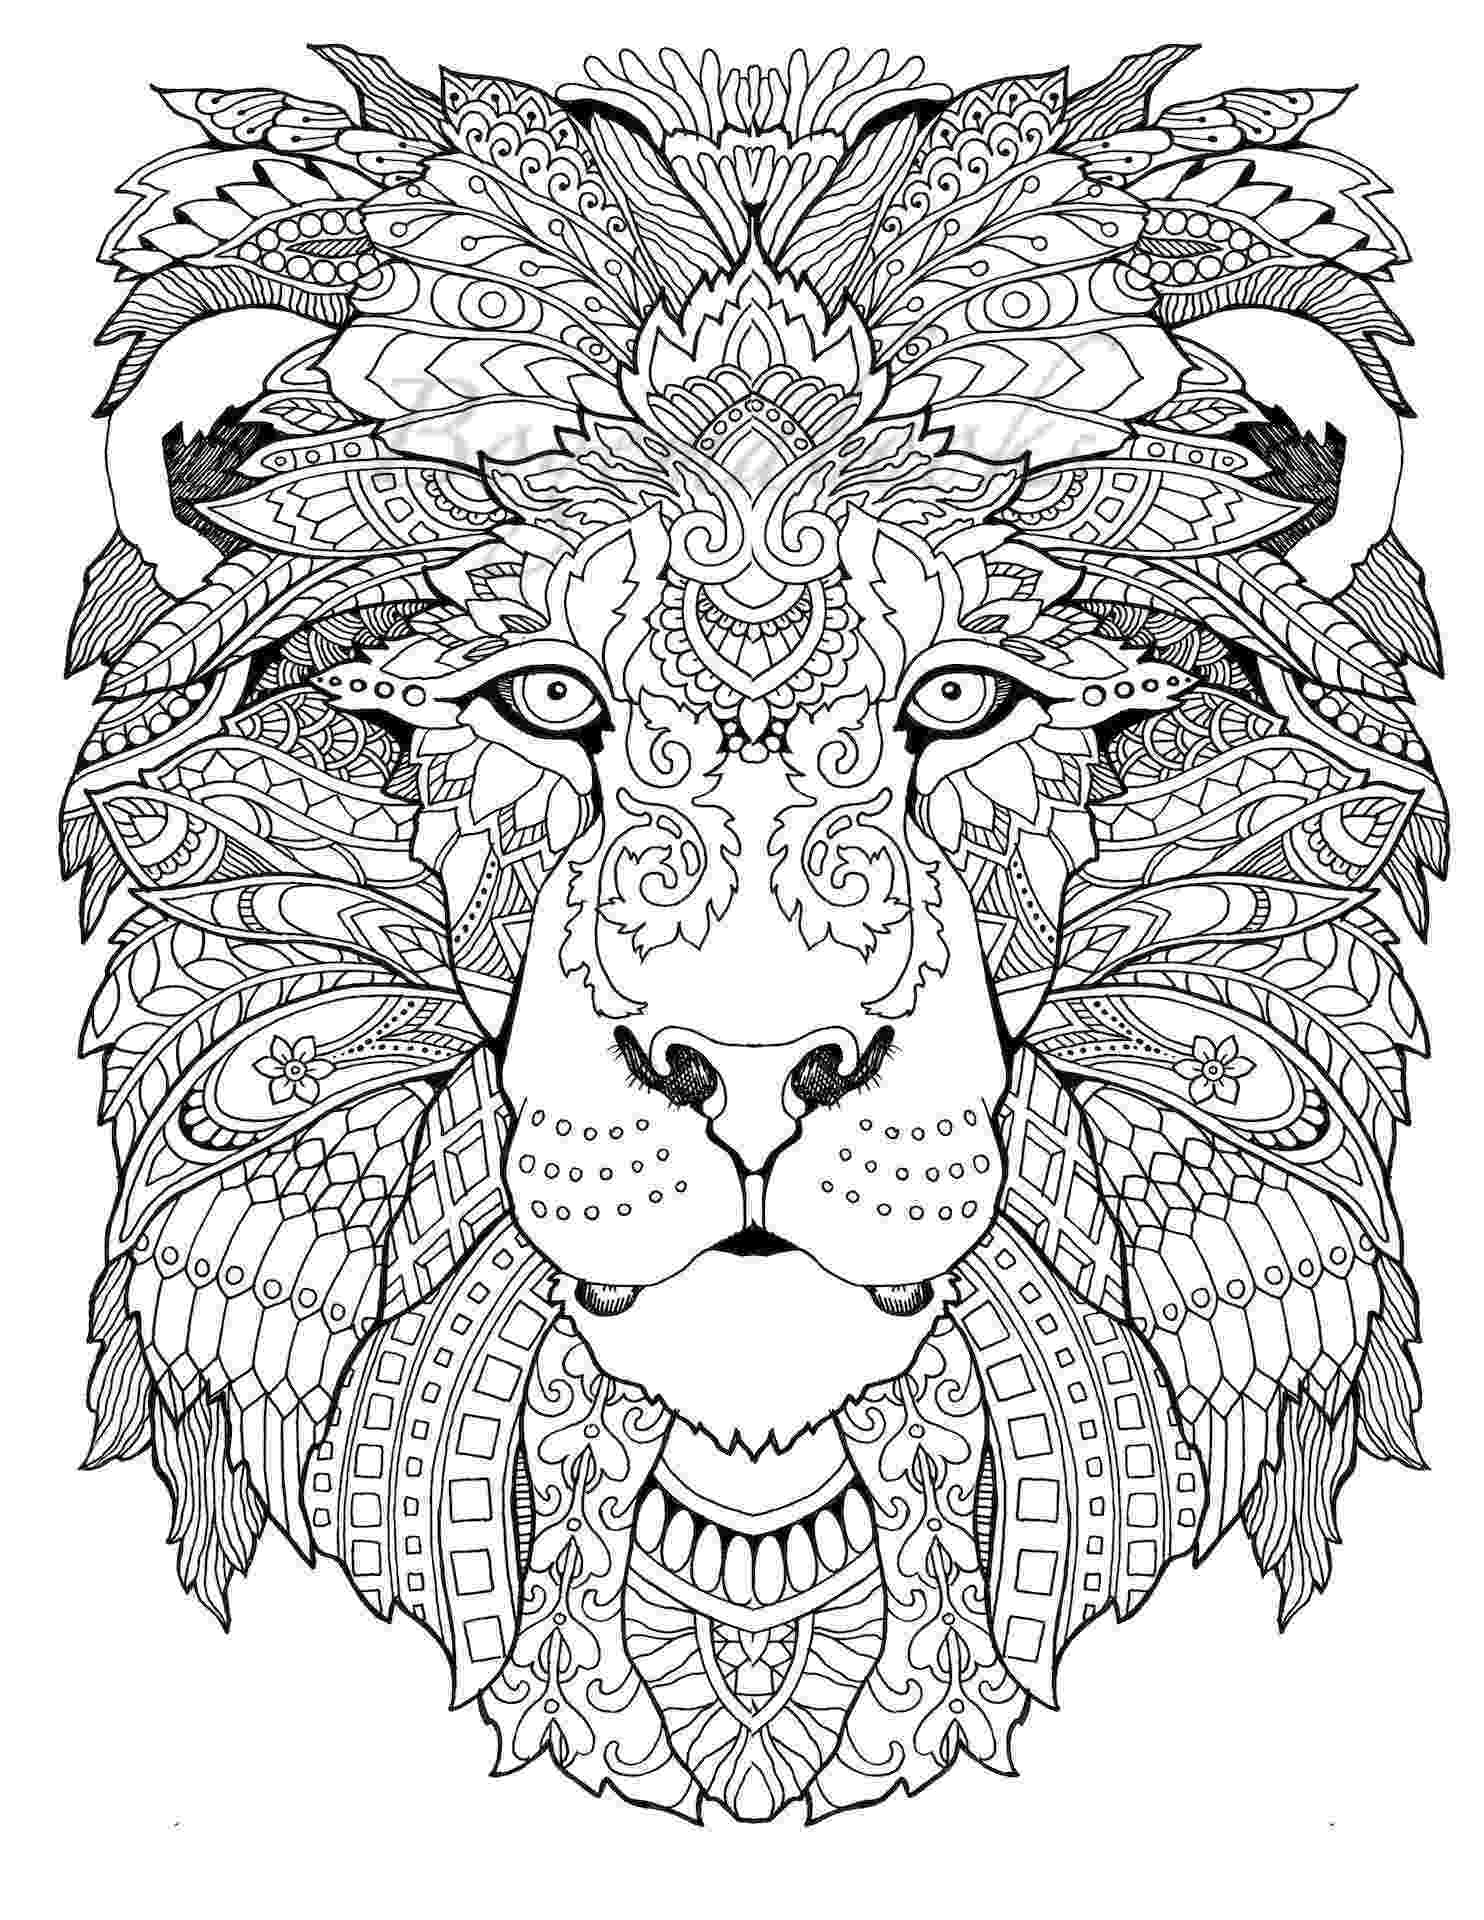 coloring pages pdf awesome animals adult coloring book coloring pages pdf pages pdf coloring